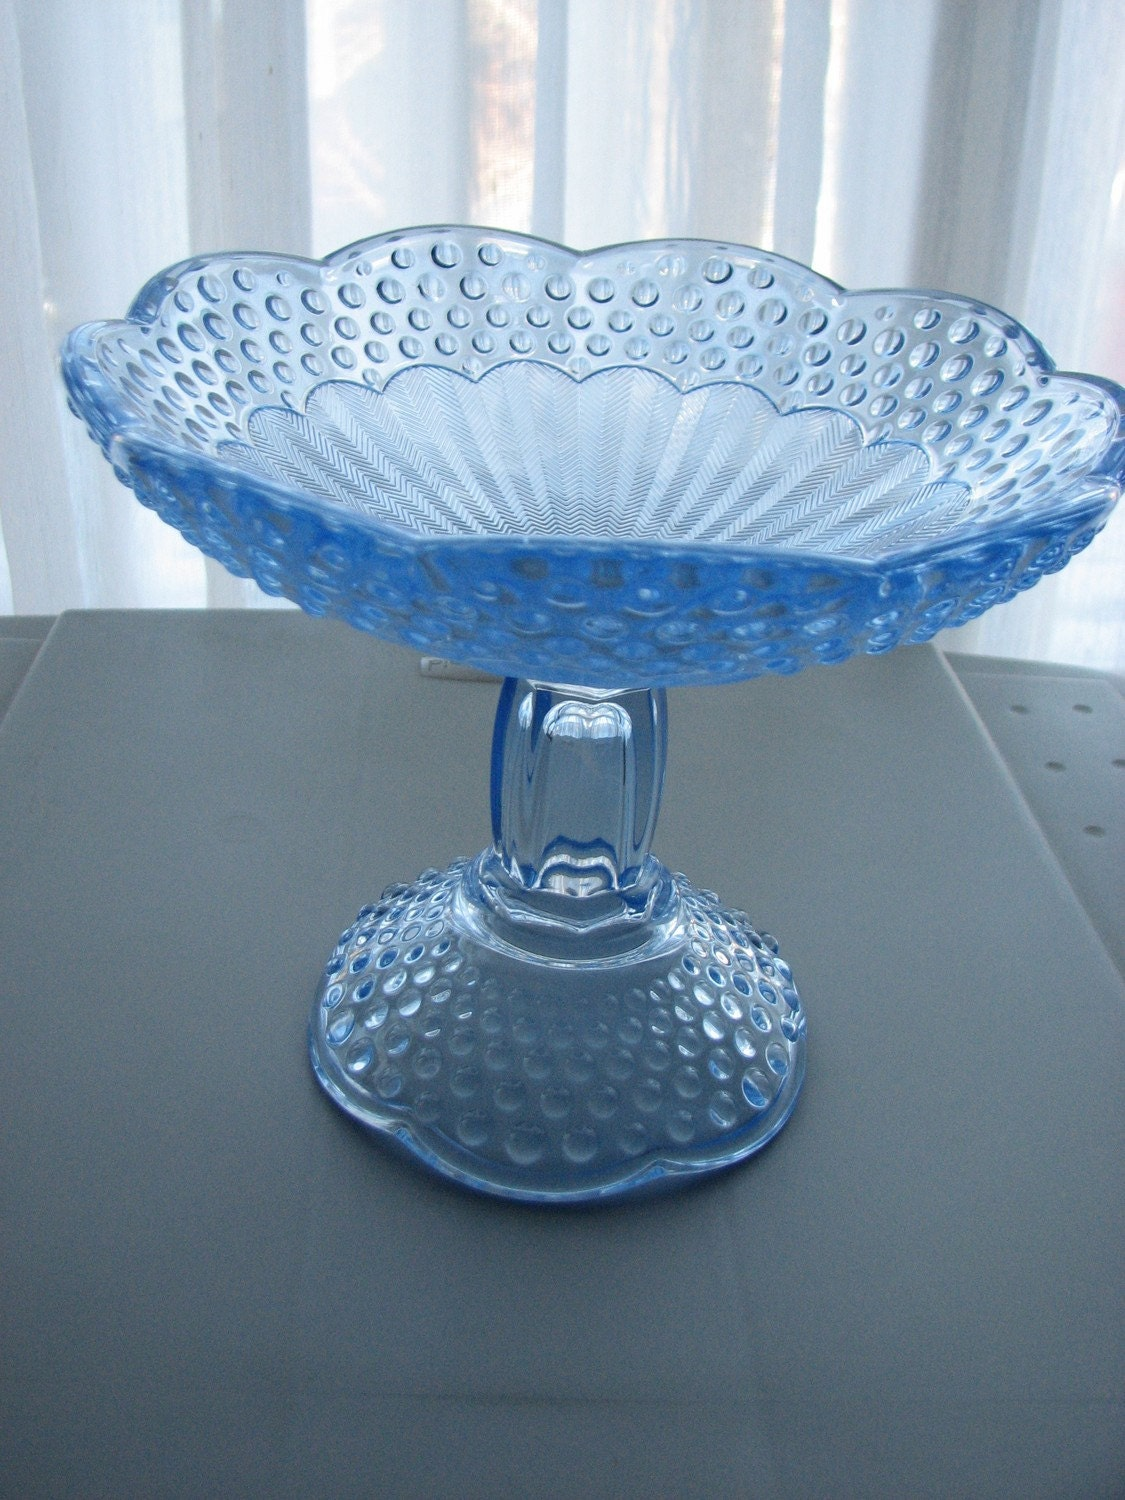 Clearance item...Vintage Emily's Attic by Gorham Blue Glass Compote Bowl